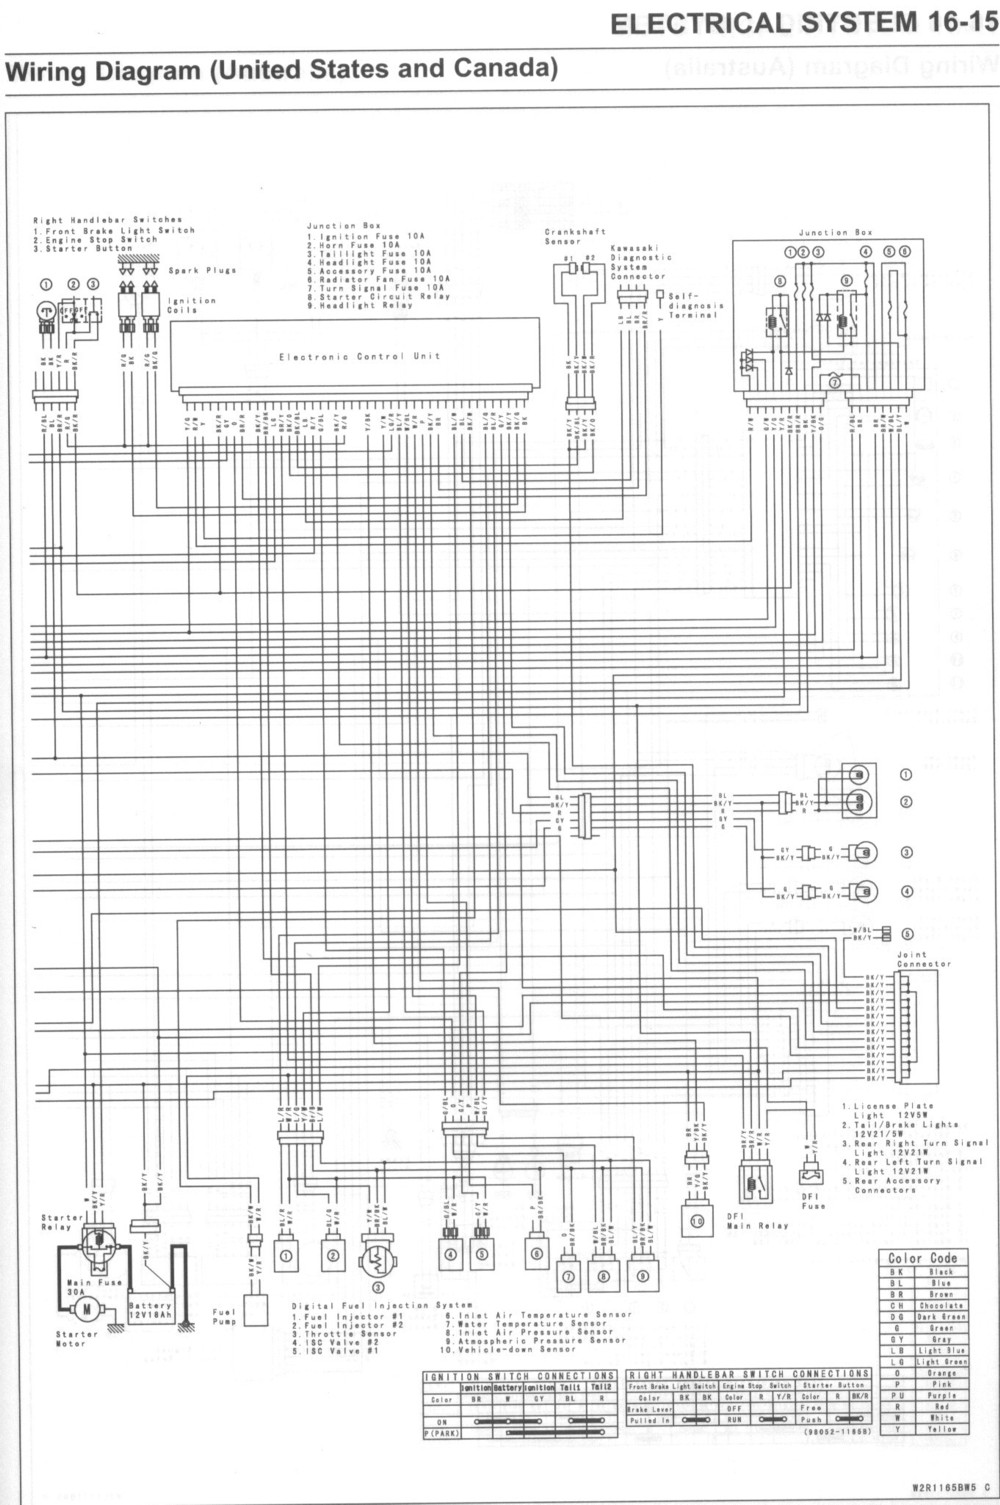 vn1600a1_wiring pg2 nomad wiring diagrams scout 800 wiring diagram at aneh.co